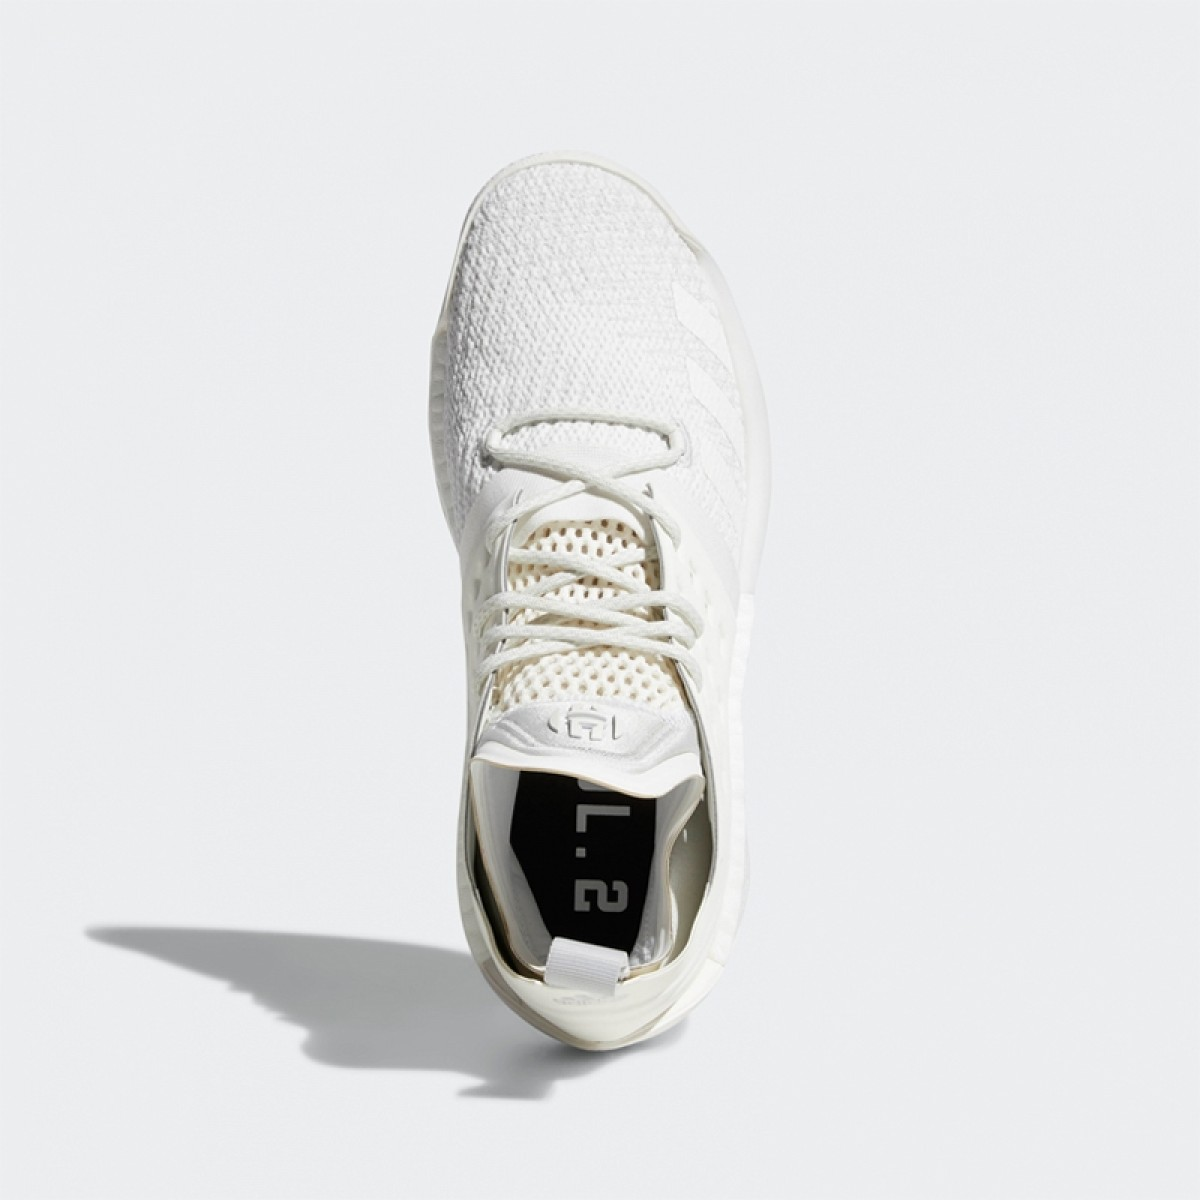 ADIDAS Harden Vol.2 'Total white' AP9871